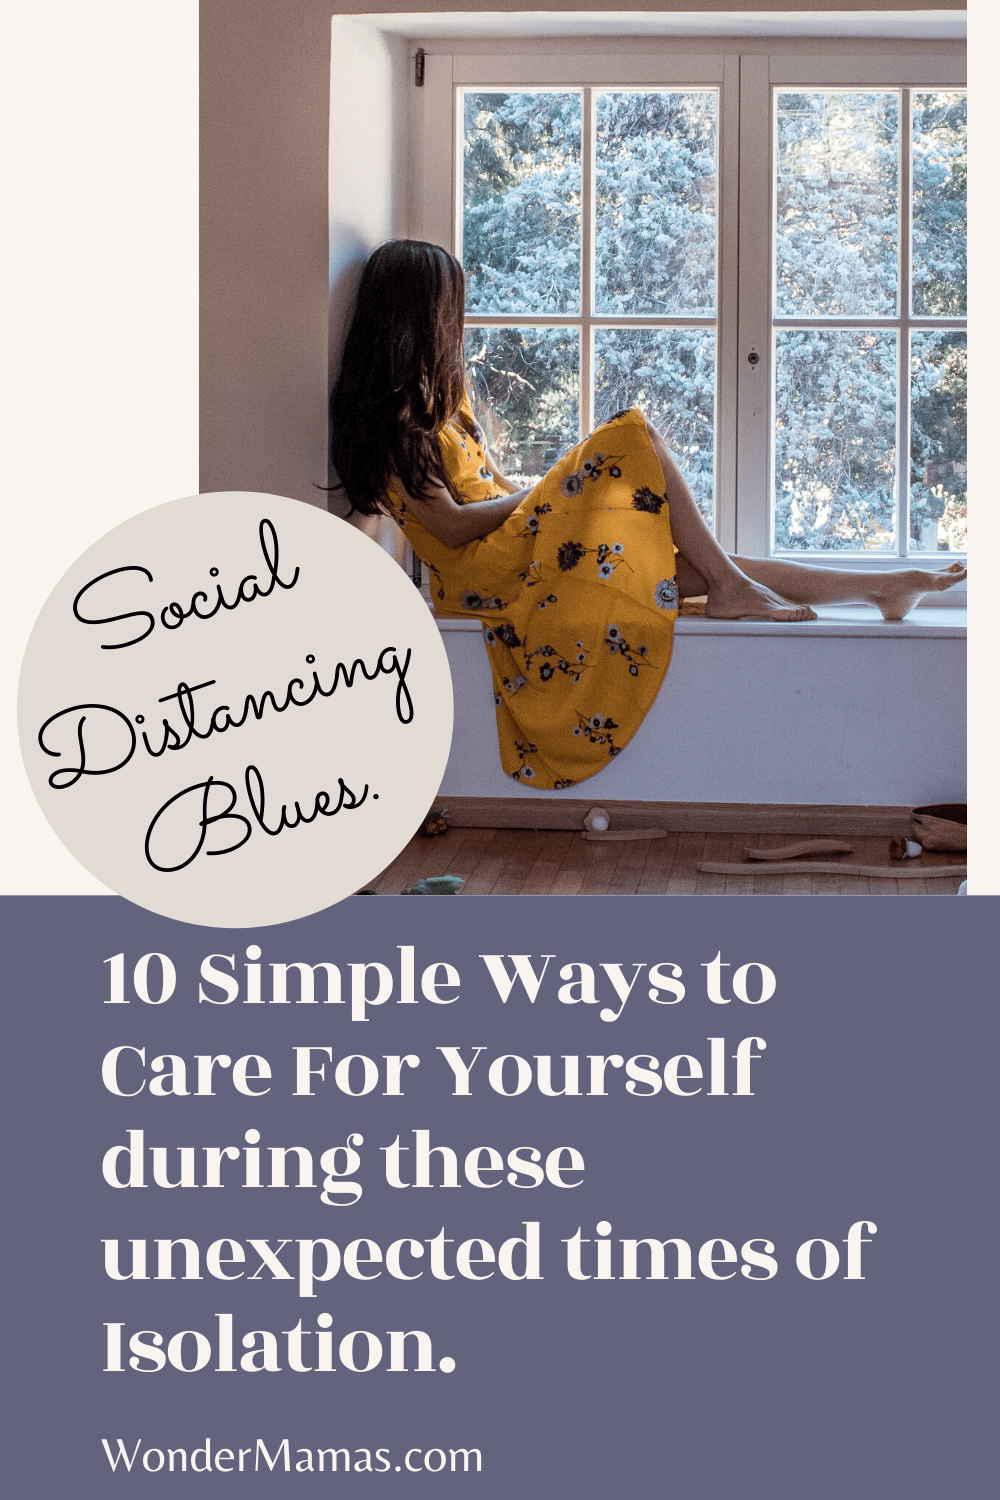 10 Simple Ways to Care For Yourself